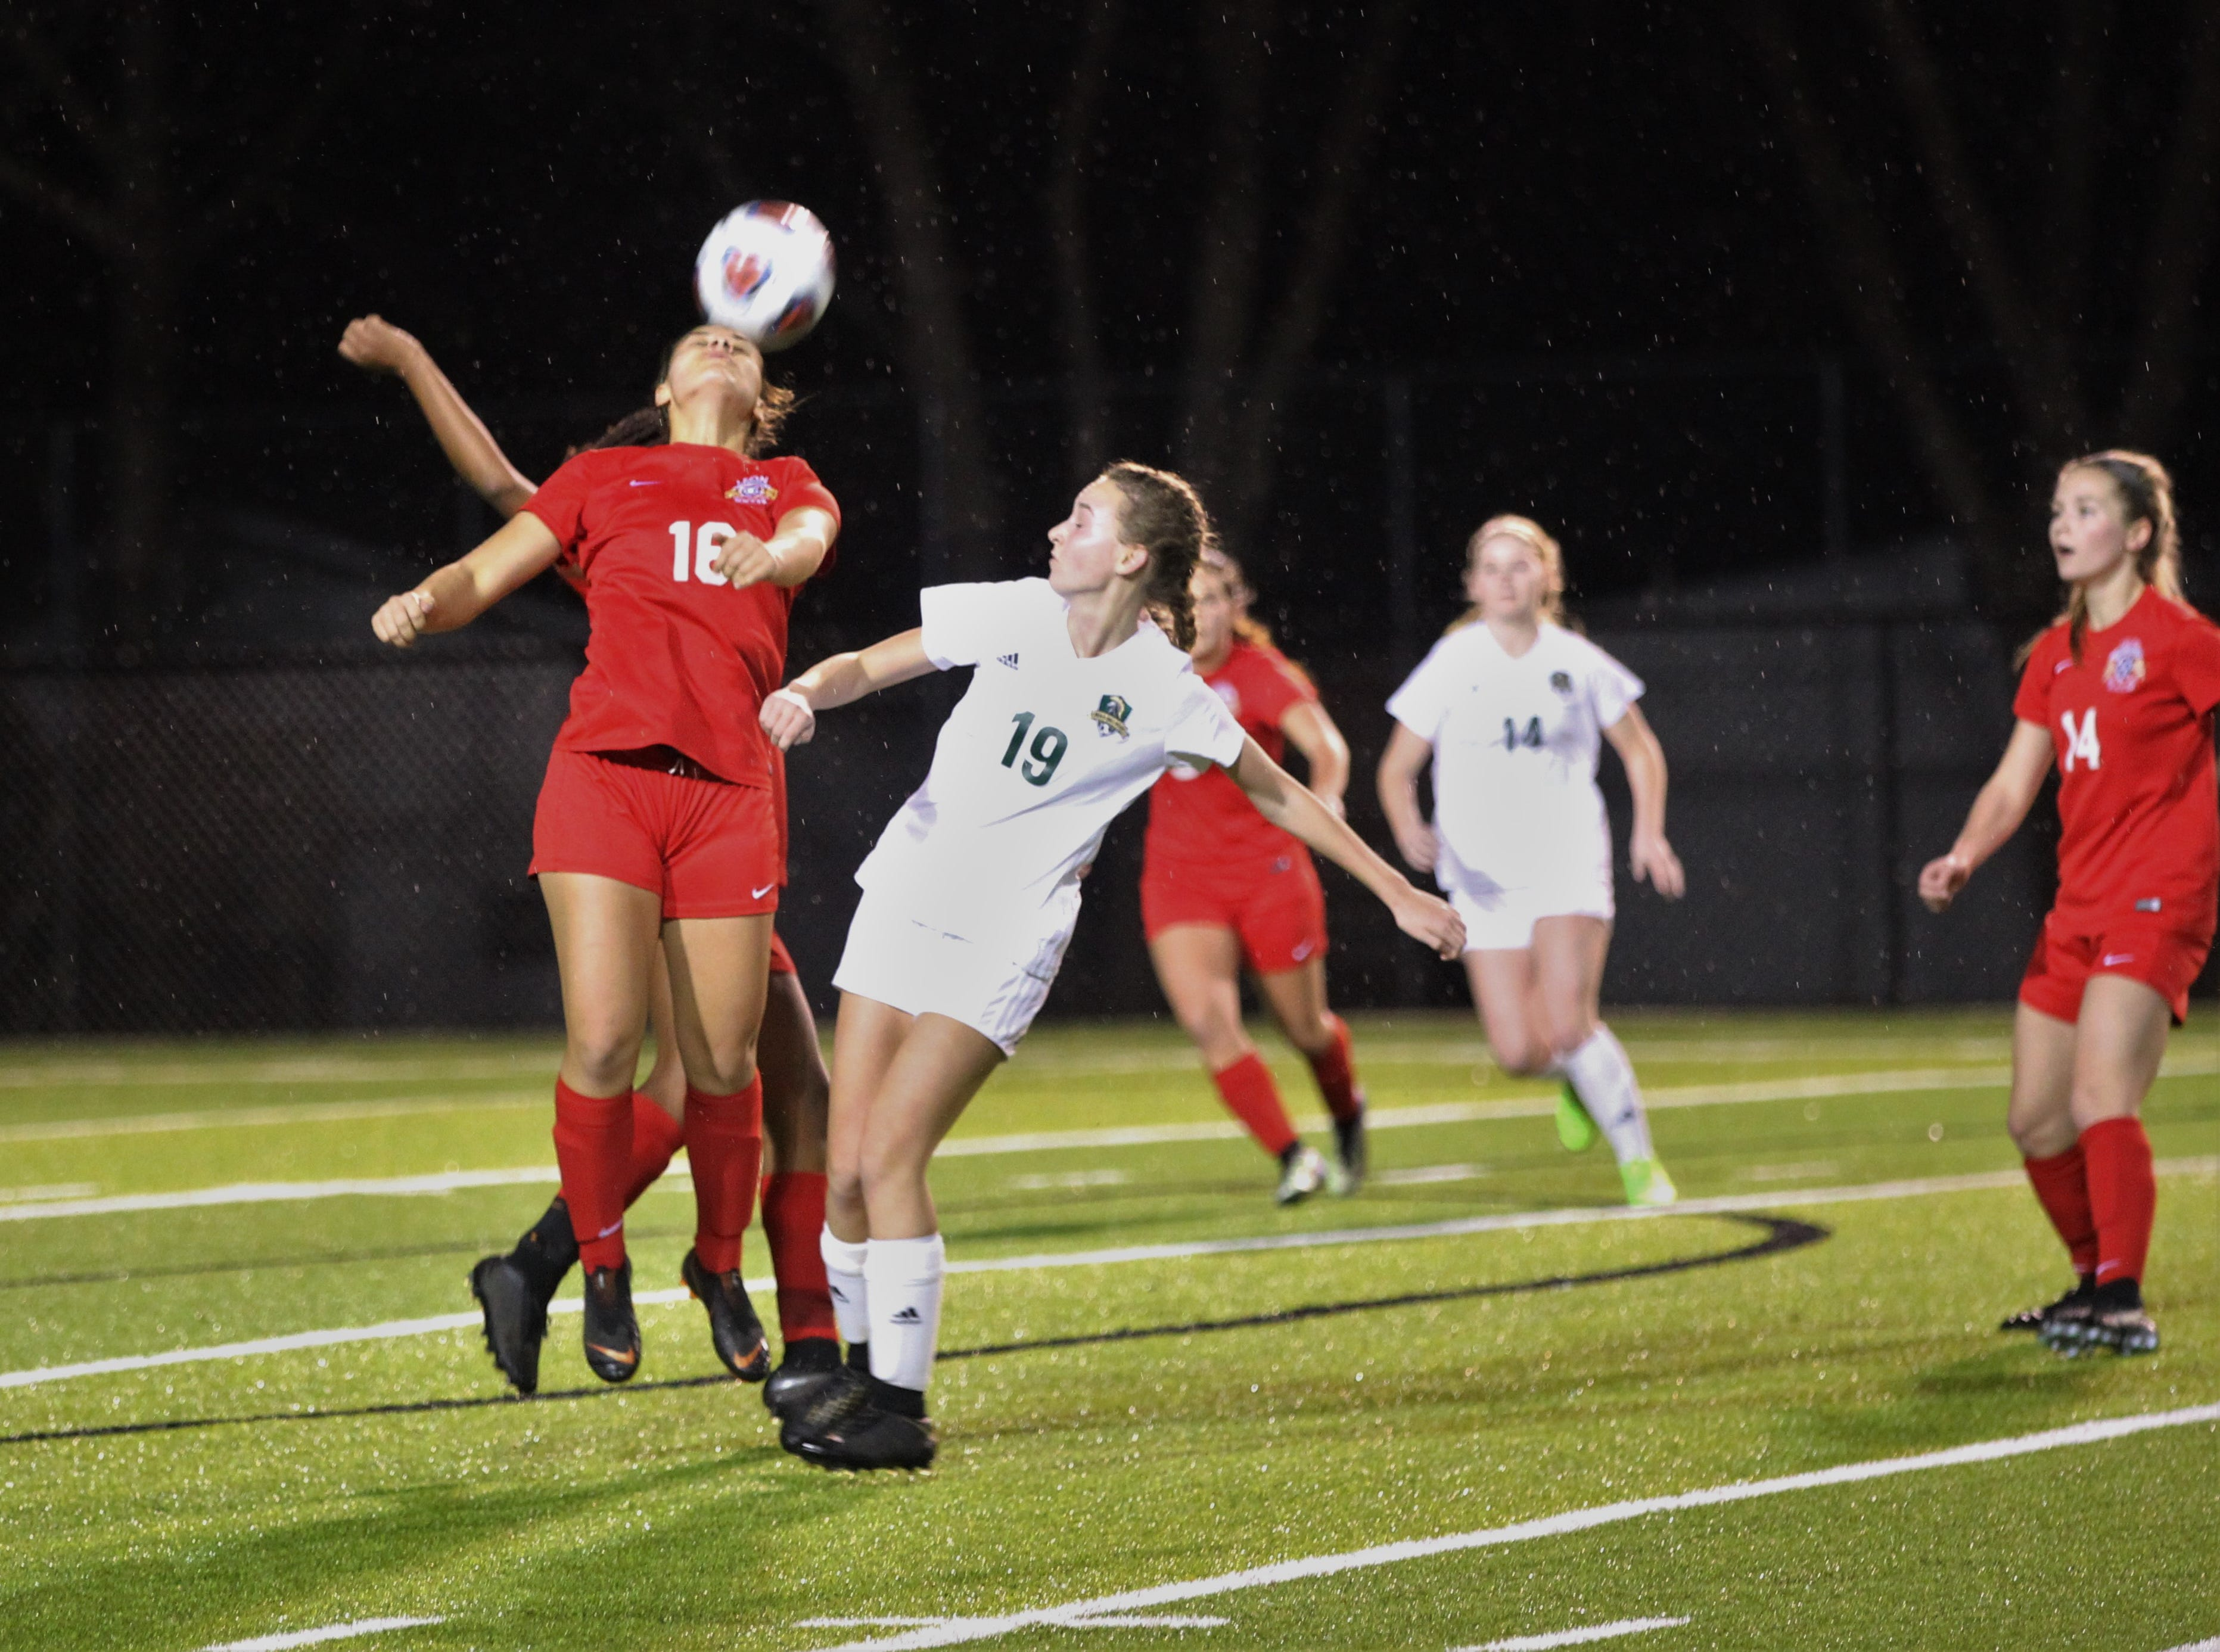 Leon's Eden Kirn heads a ball before Lincoln's Lexi Gray can get there as Leon's girls soccer team beat Lincoln in the District 2-4A championship on Feb. 1, 2019.